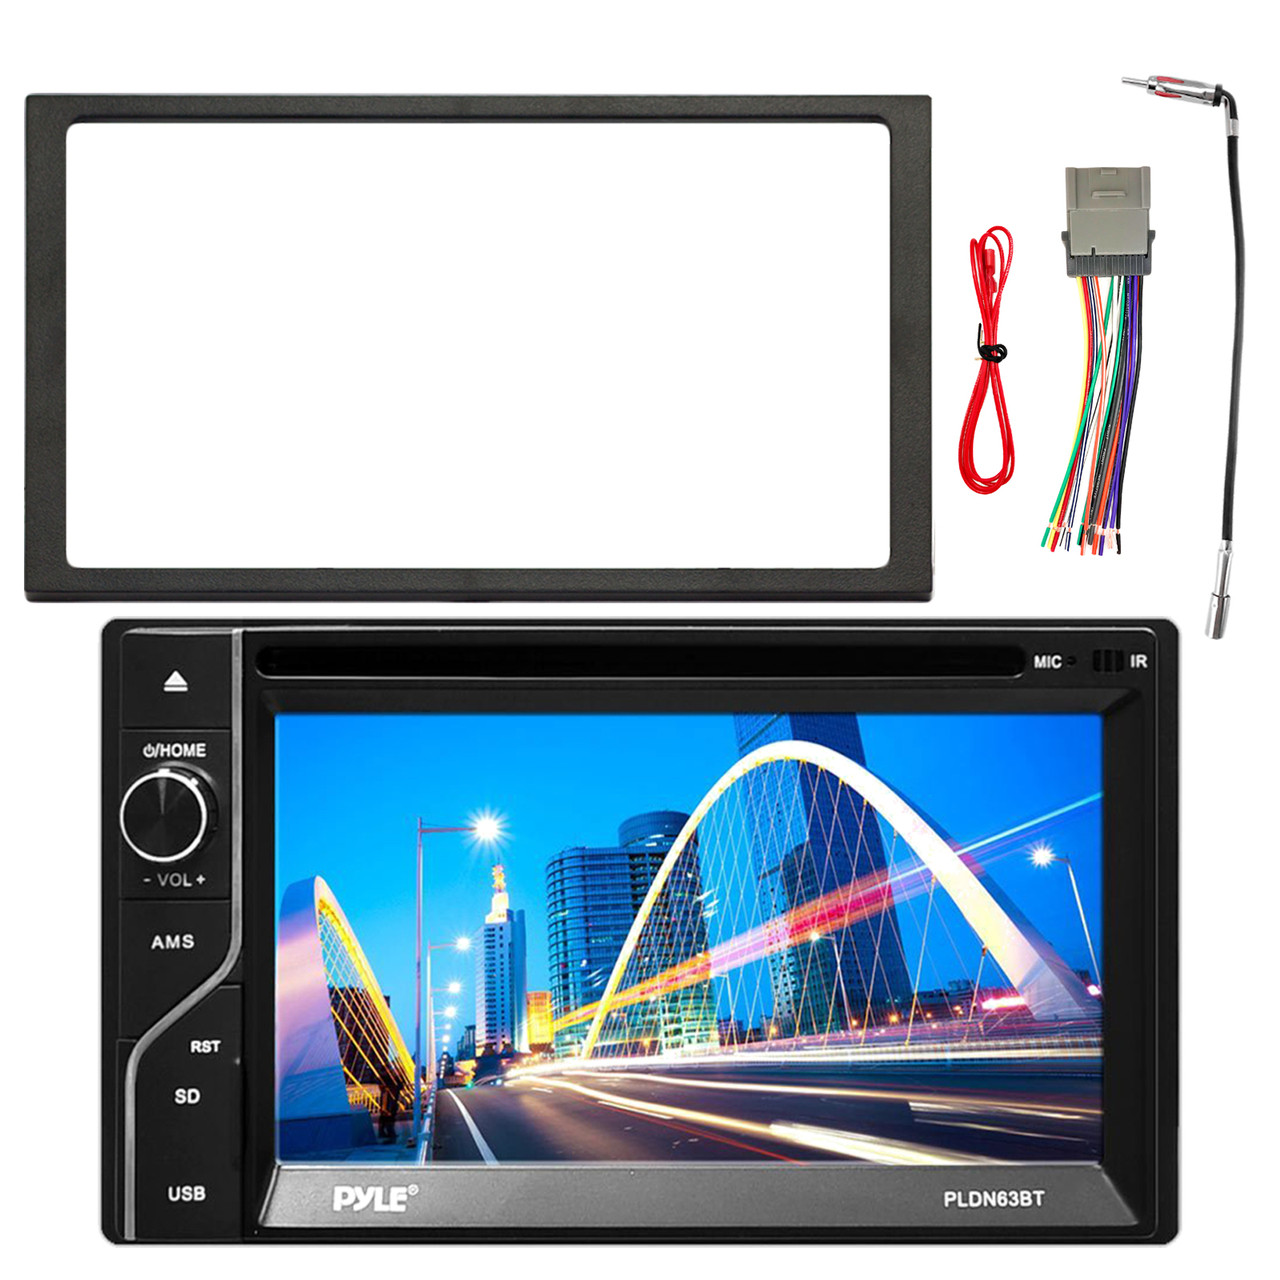 pyle 6 5 touch screen tft lcd monitor mp3 usb am fm bluetooth receiver enrock double din installation dash kit enrock stereo wiring harness  [ 1280 x 1280 Pixel ]